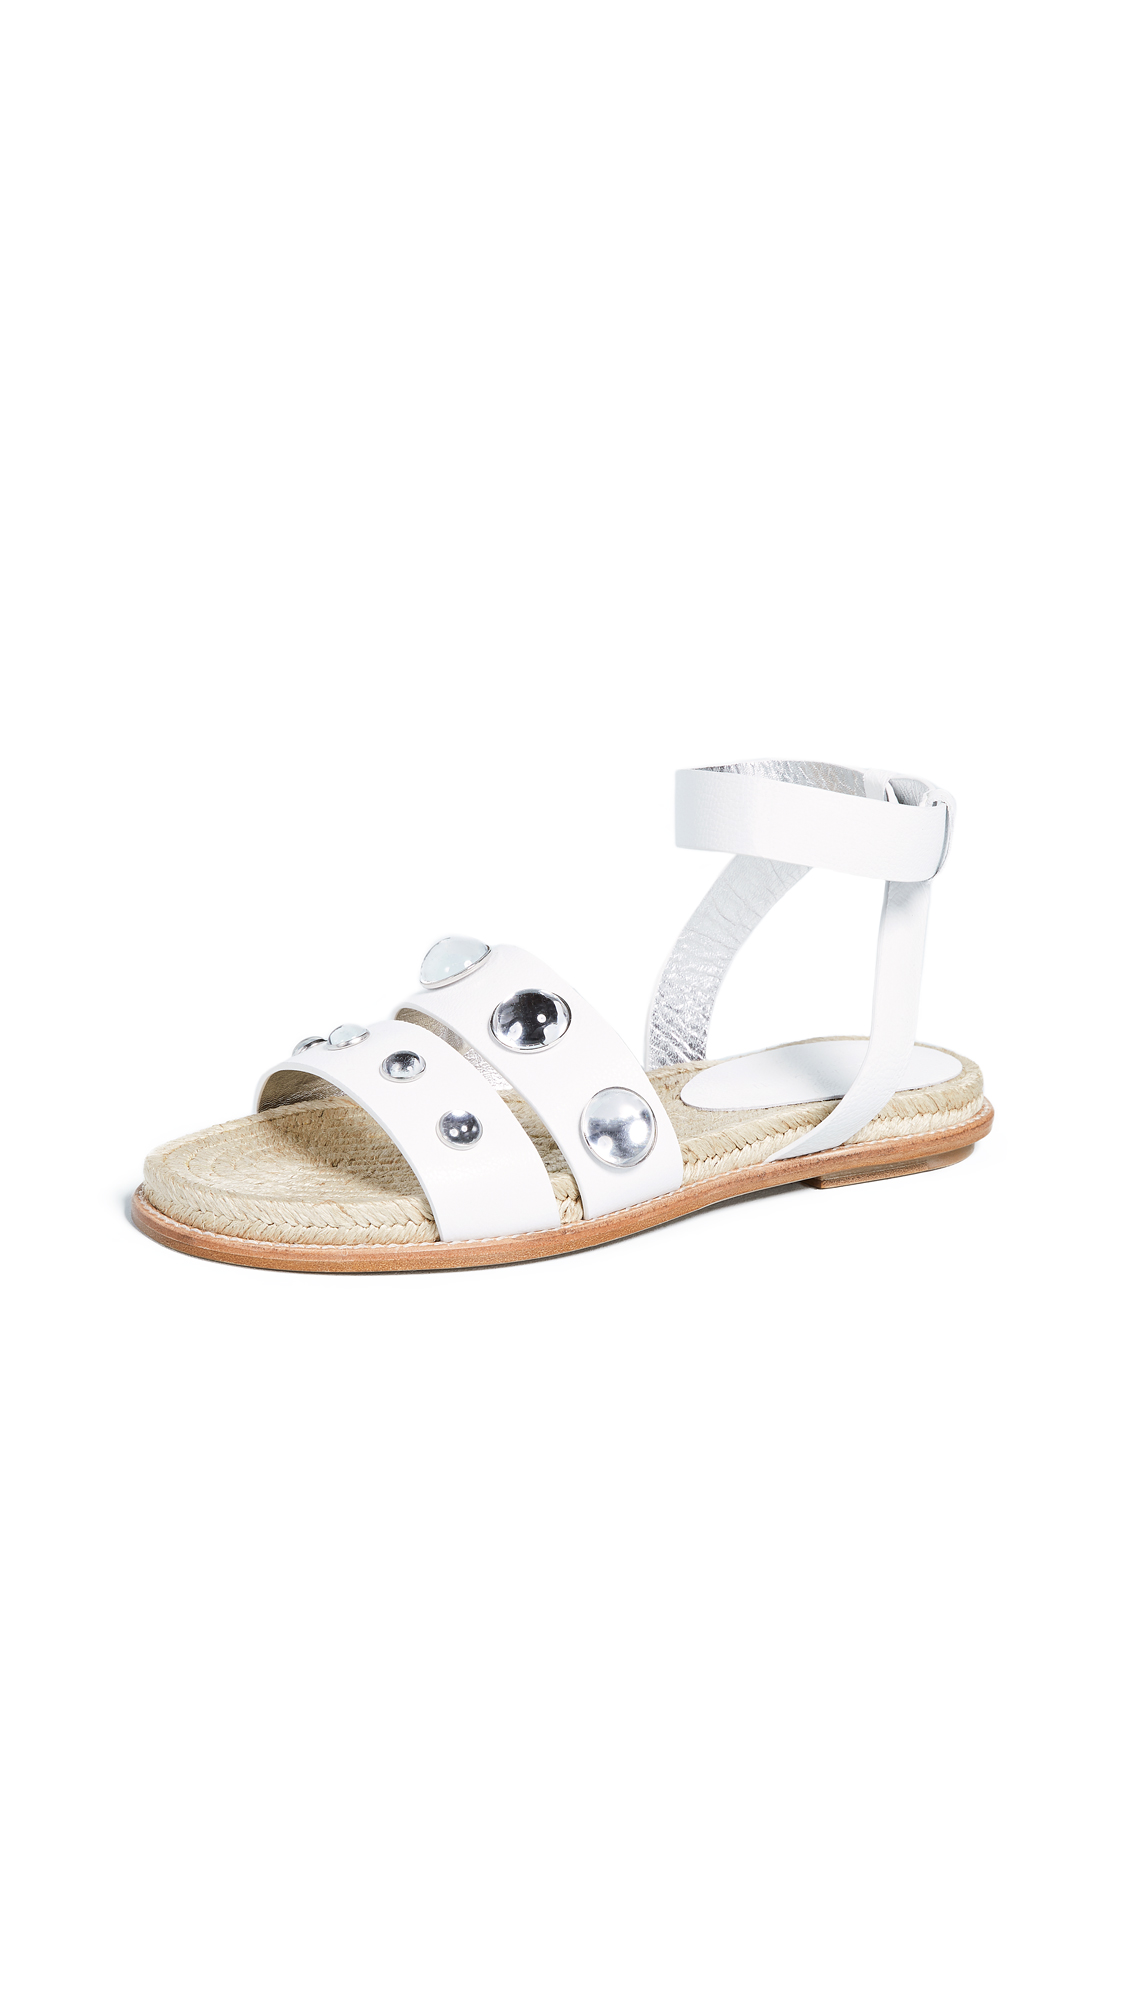 Paul Andrew Scully Stones Sandals - White